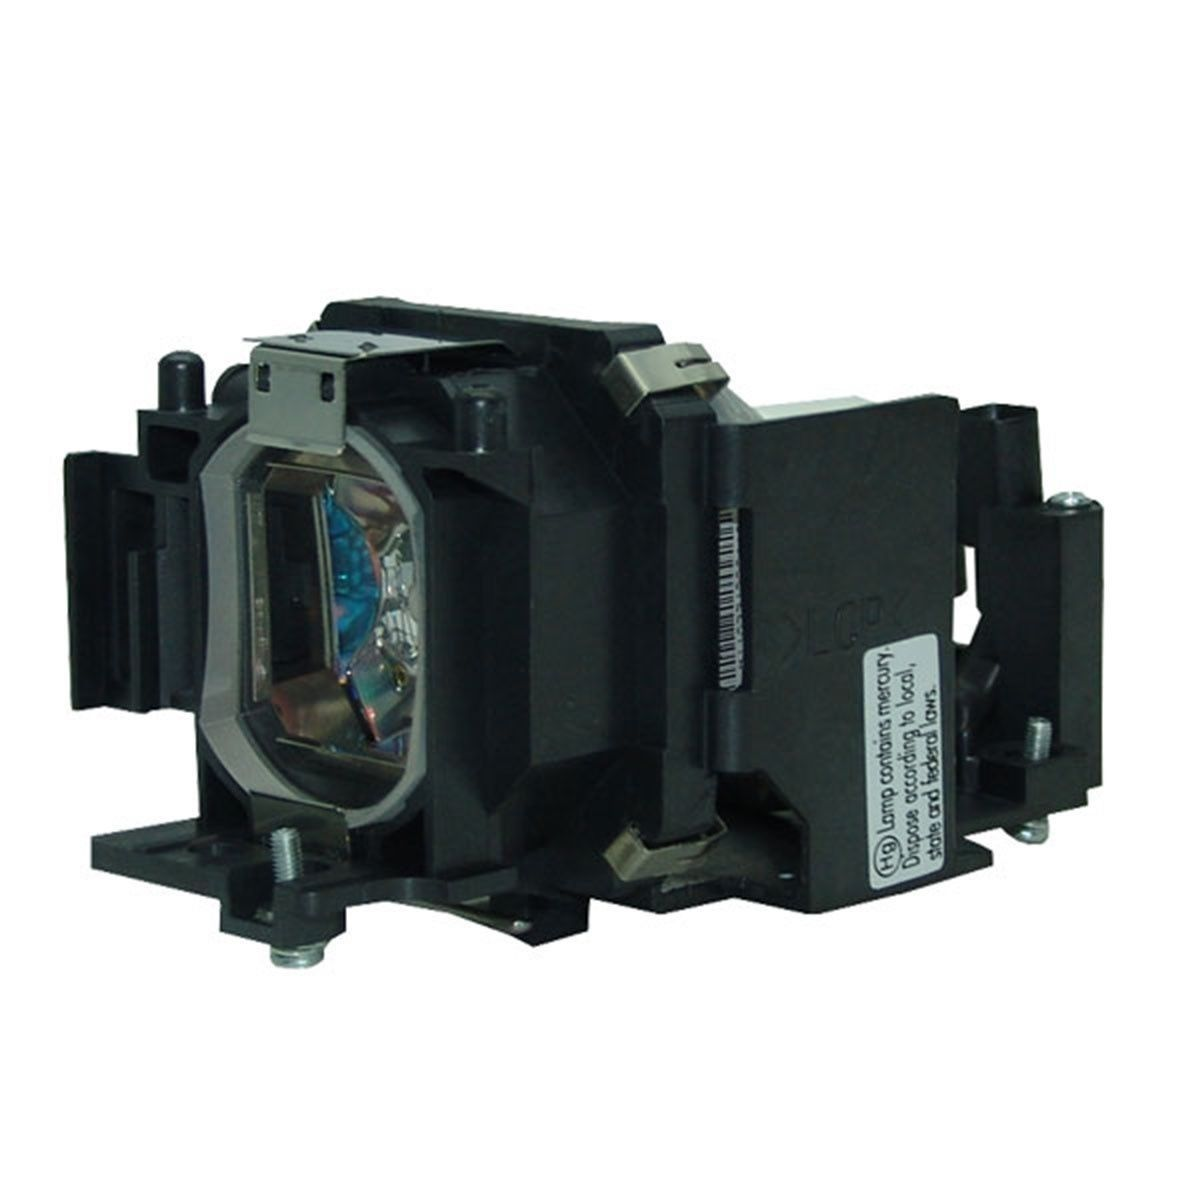 все цены на Projector Lamp Bulb LMP-E180 LMPE180 for SONY VPL-CS7 VPL-DS100 VPL-ES1 with housing онлайн